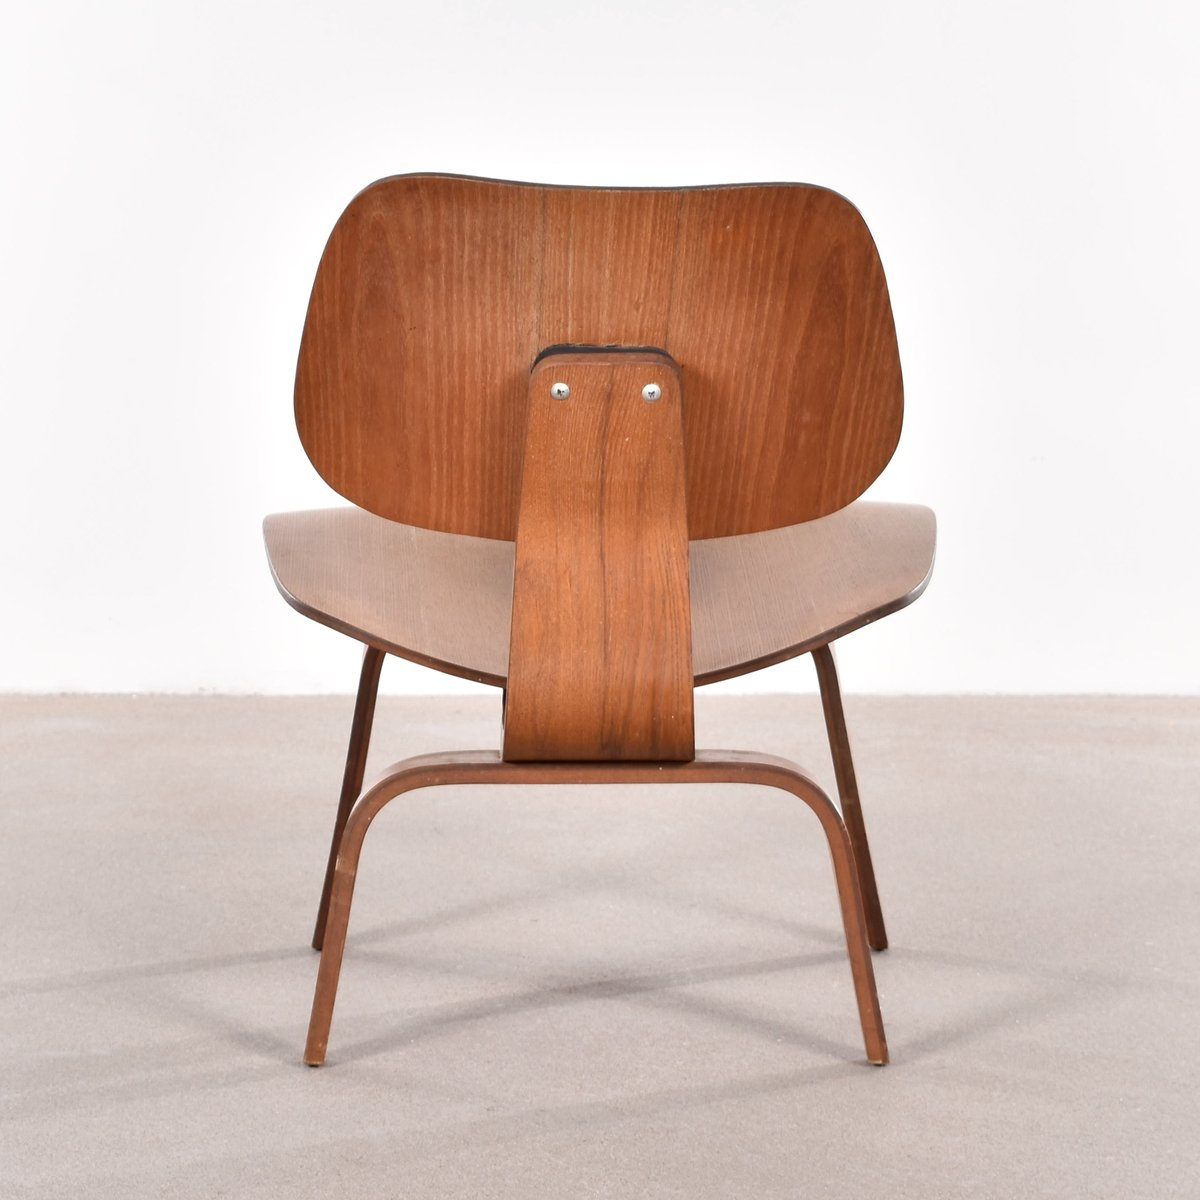 american lcw ash lounge chair by charles ray eames for herman miller 1949 for sale at pamono. Black Bedroom Furniture Sets. Home Design Ideas